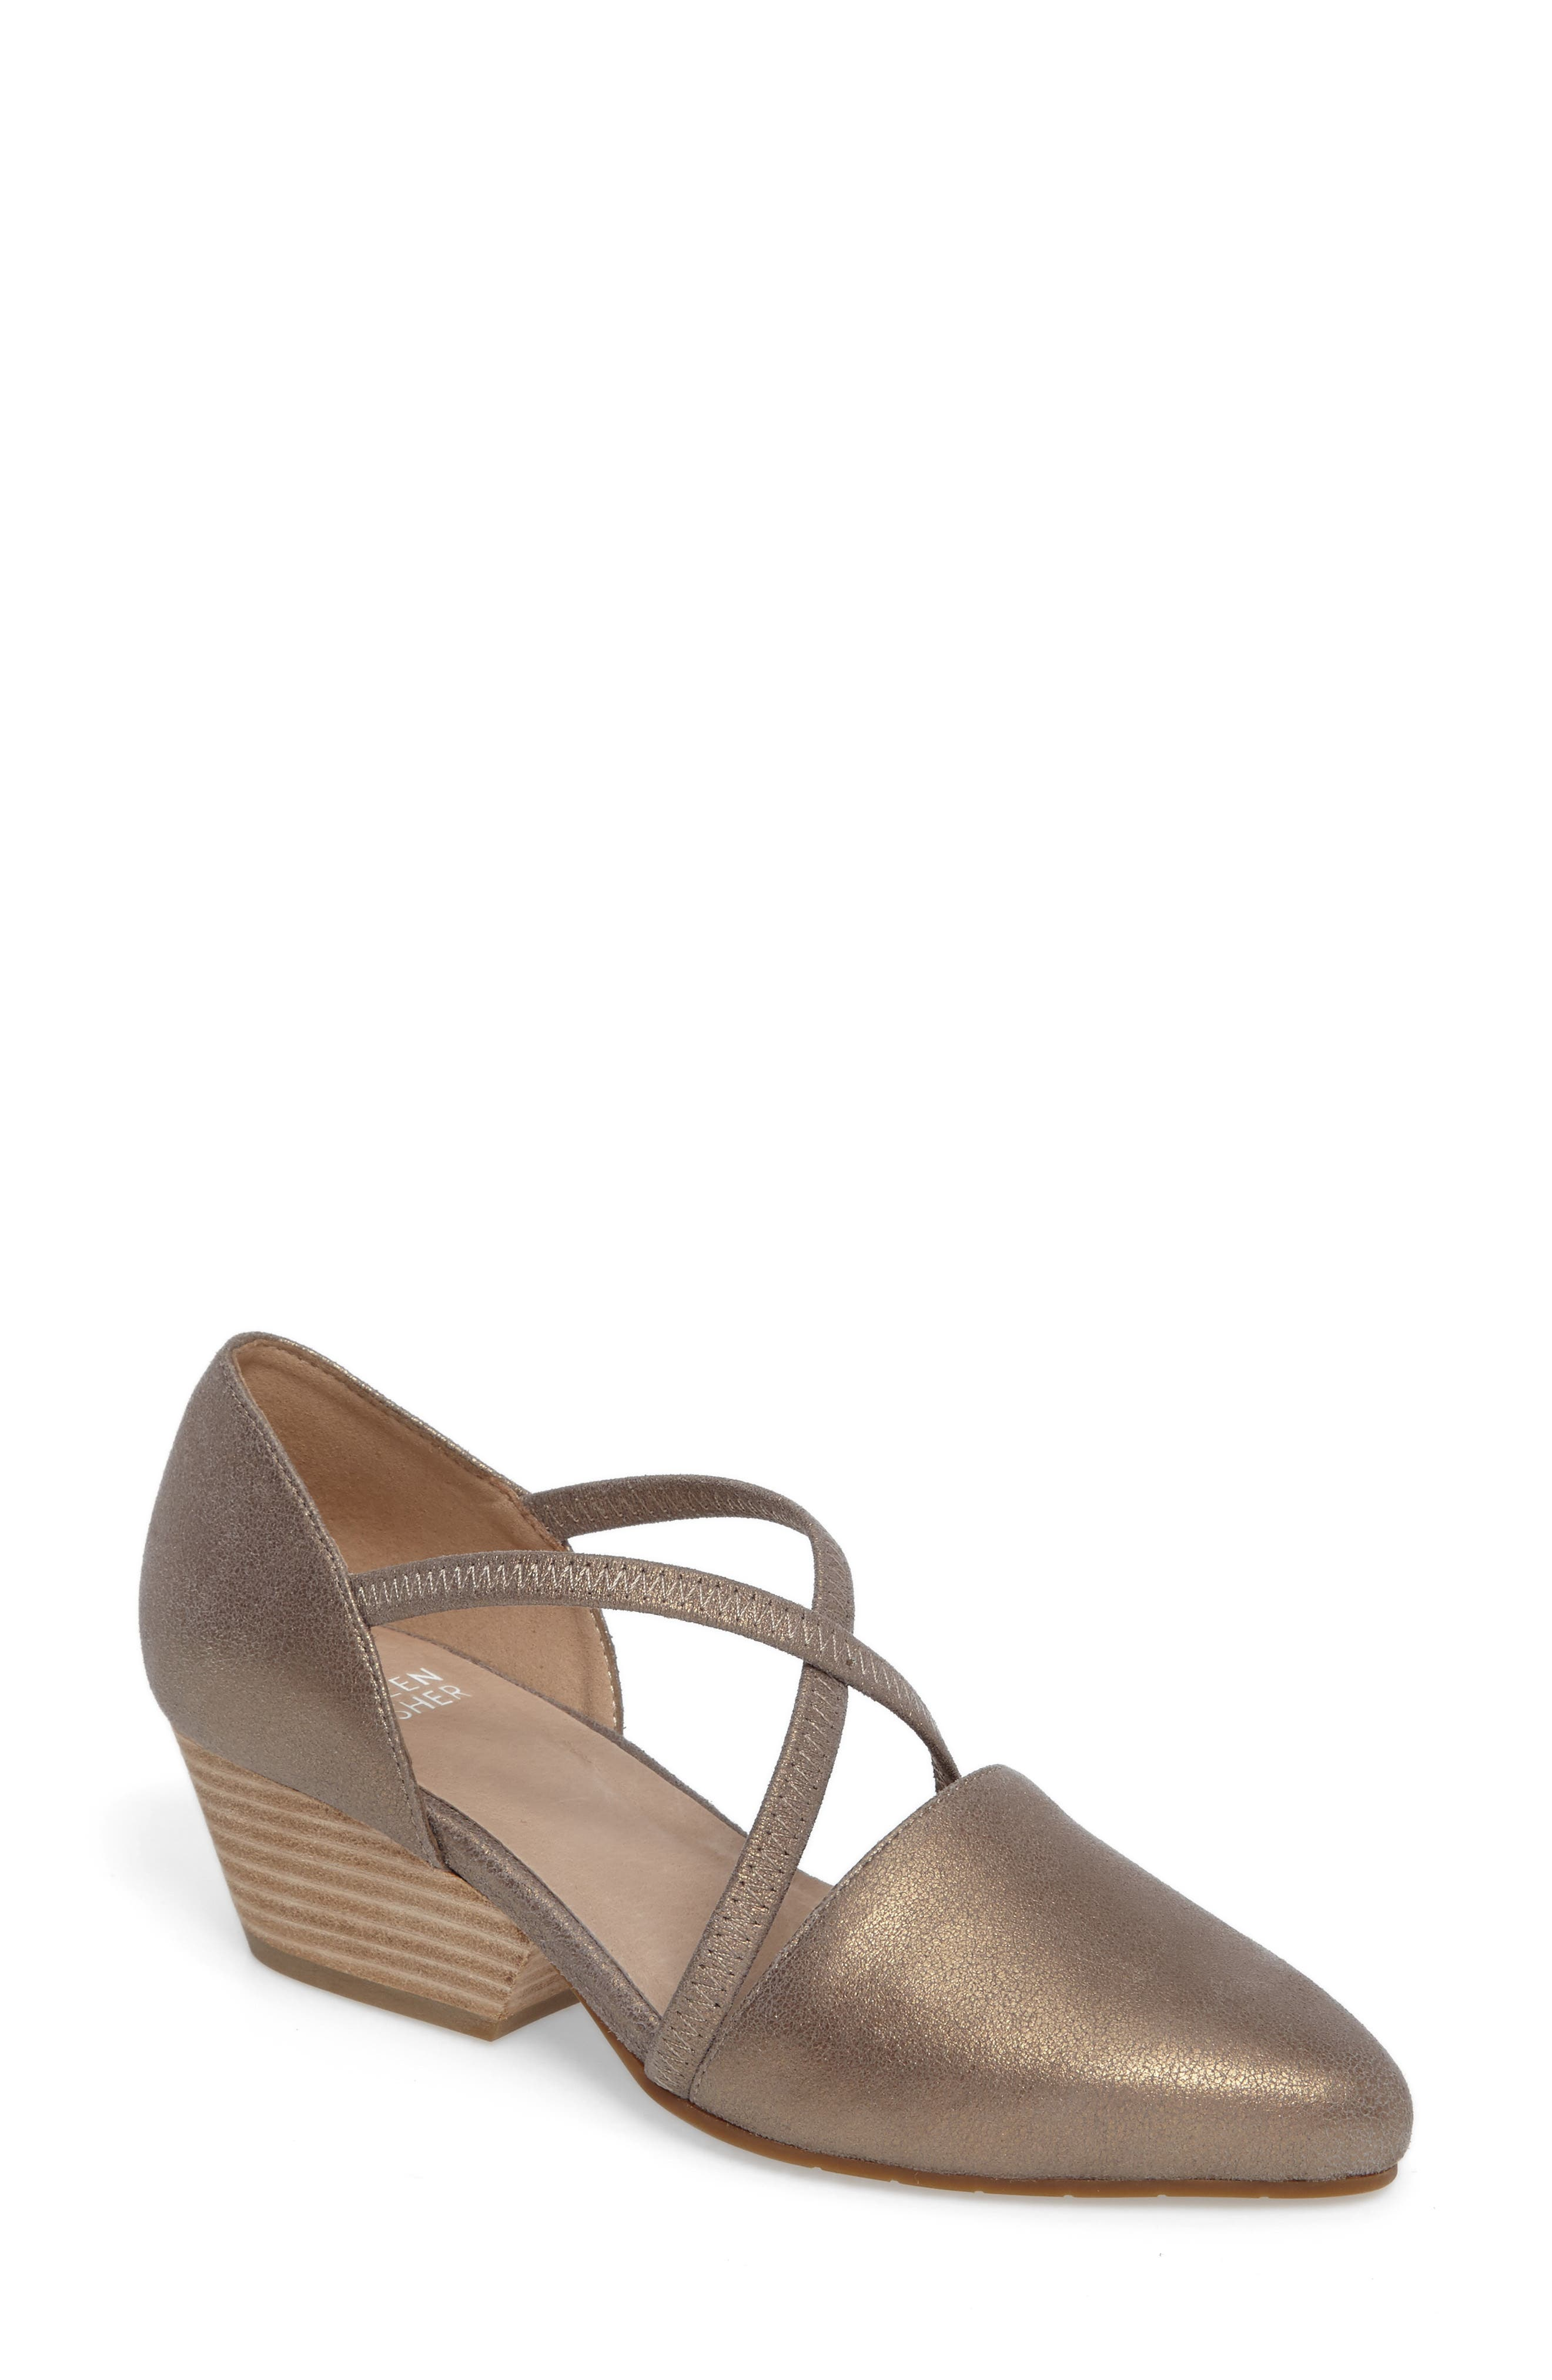 Alternate Image 1 Selected - Eileen Fisher Poet Crisscross Pump (Women)